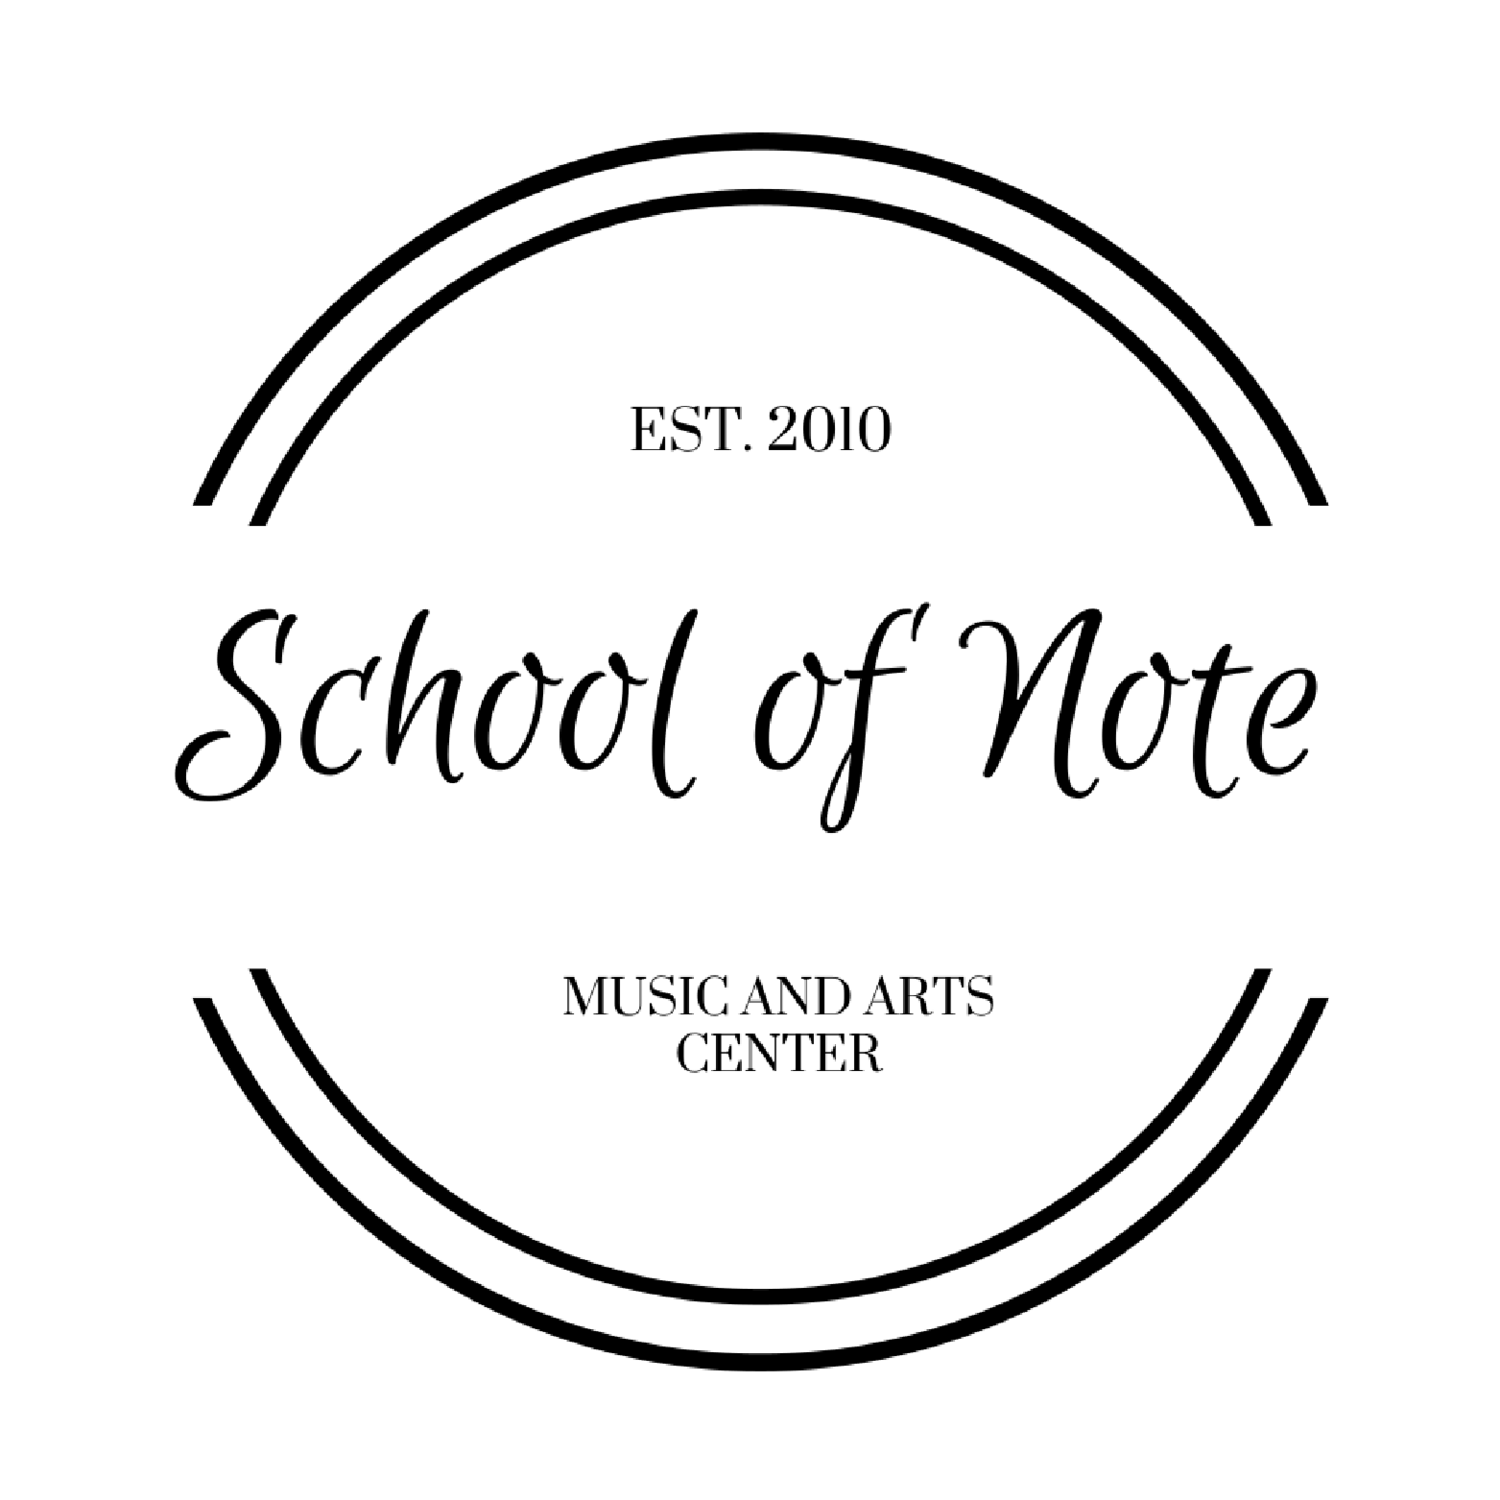 School of Note